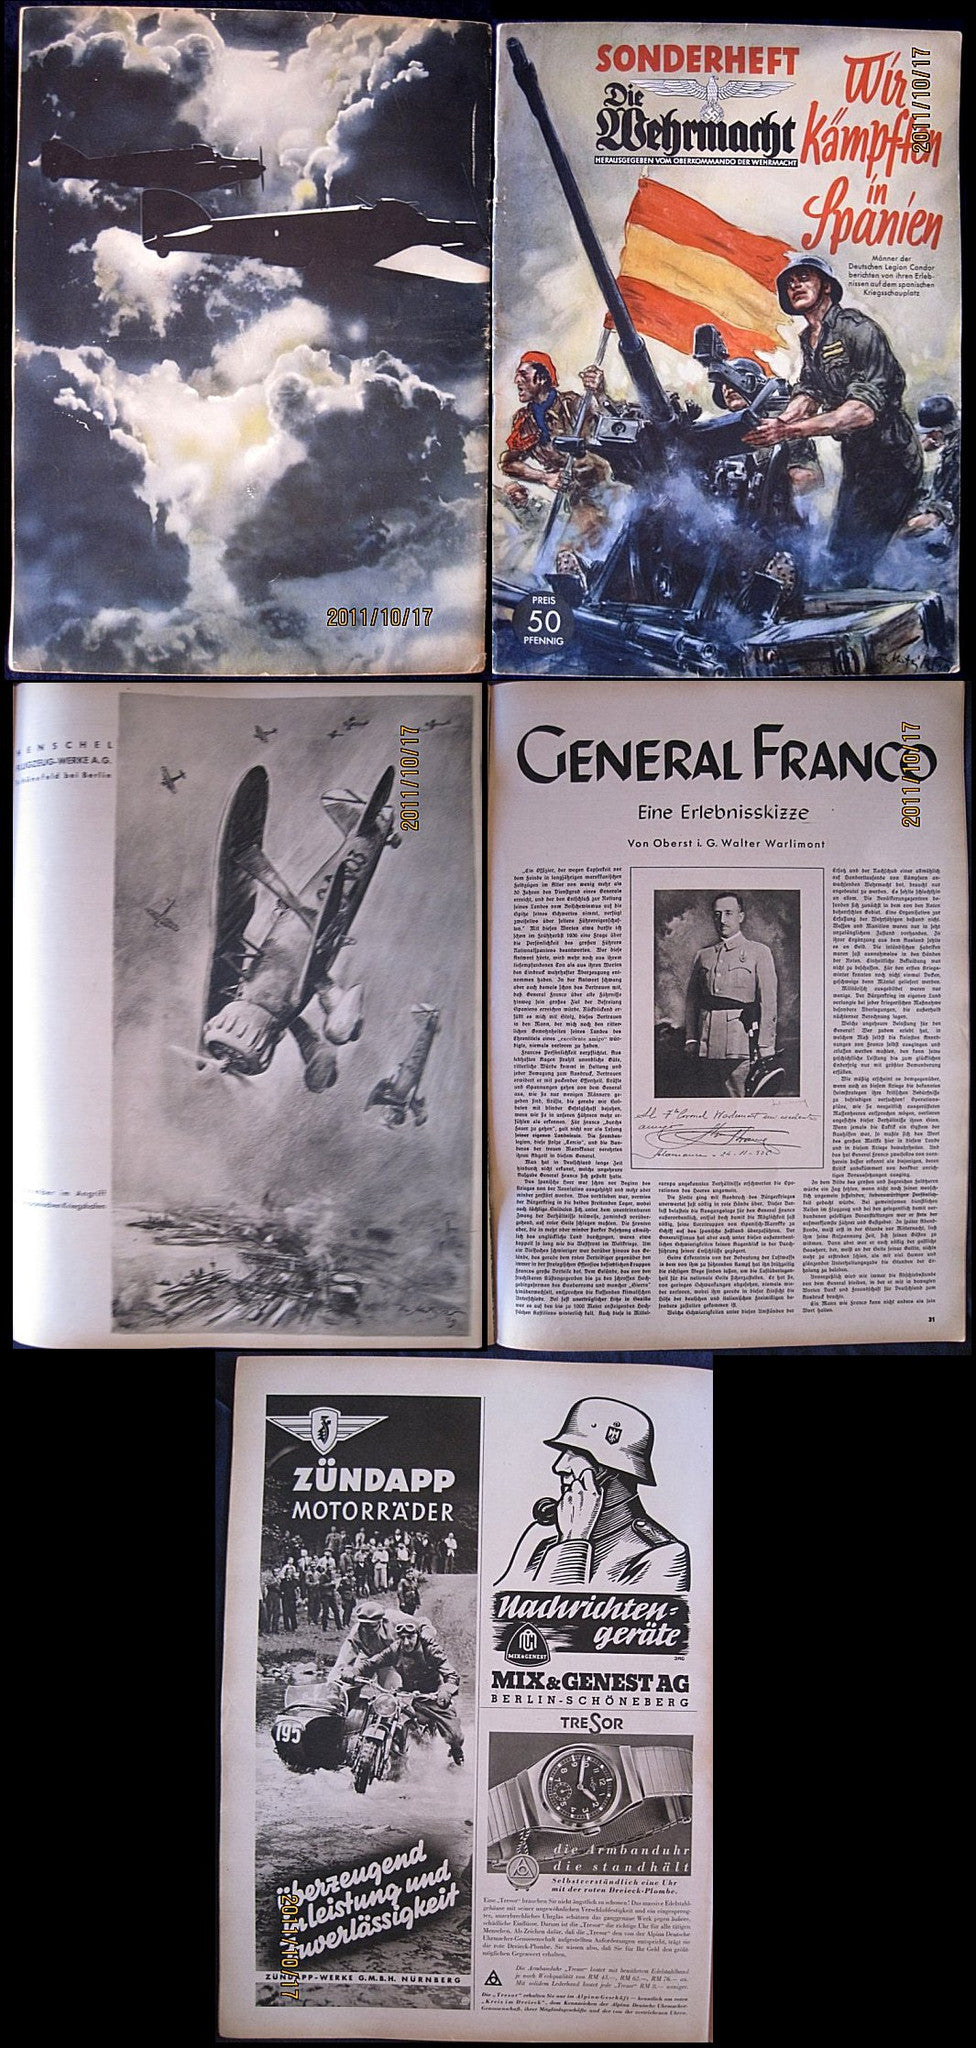 Die Wehrmacht, Special Edition, We are Fighting in Spain Issue. Very Rare. - J.V. Bond Company